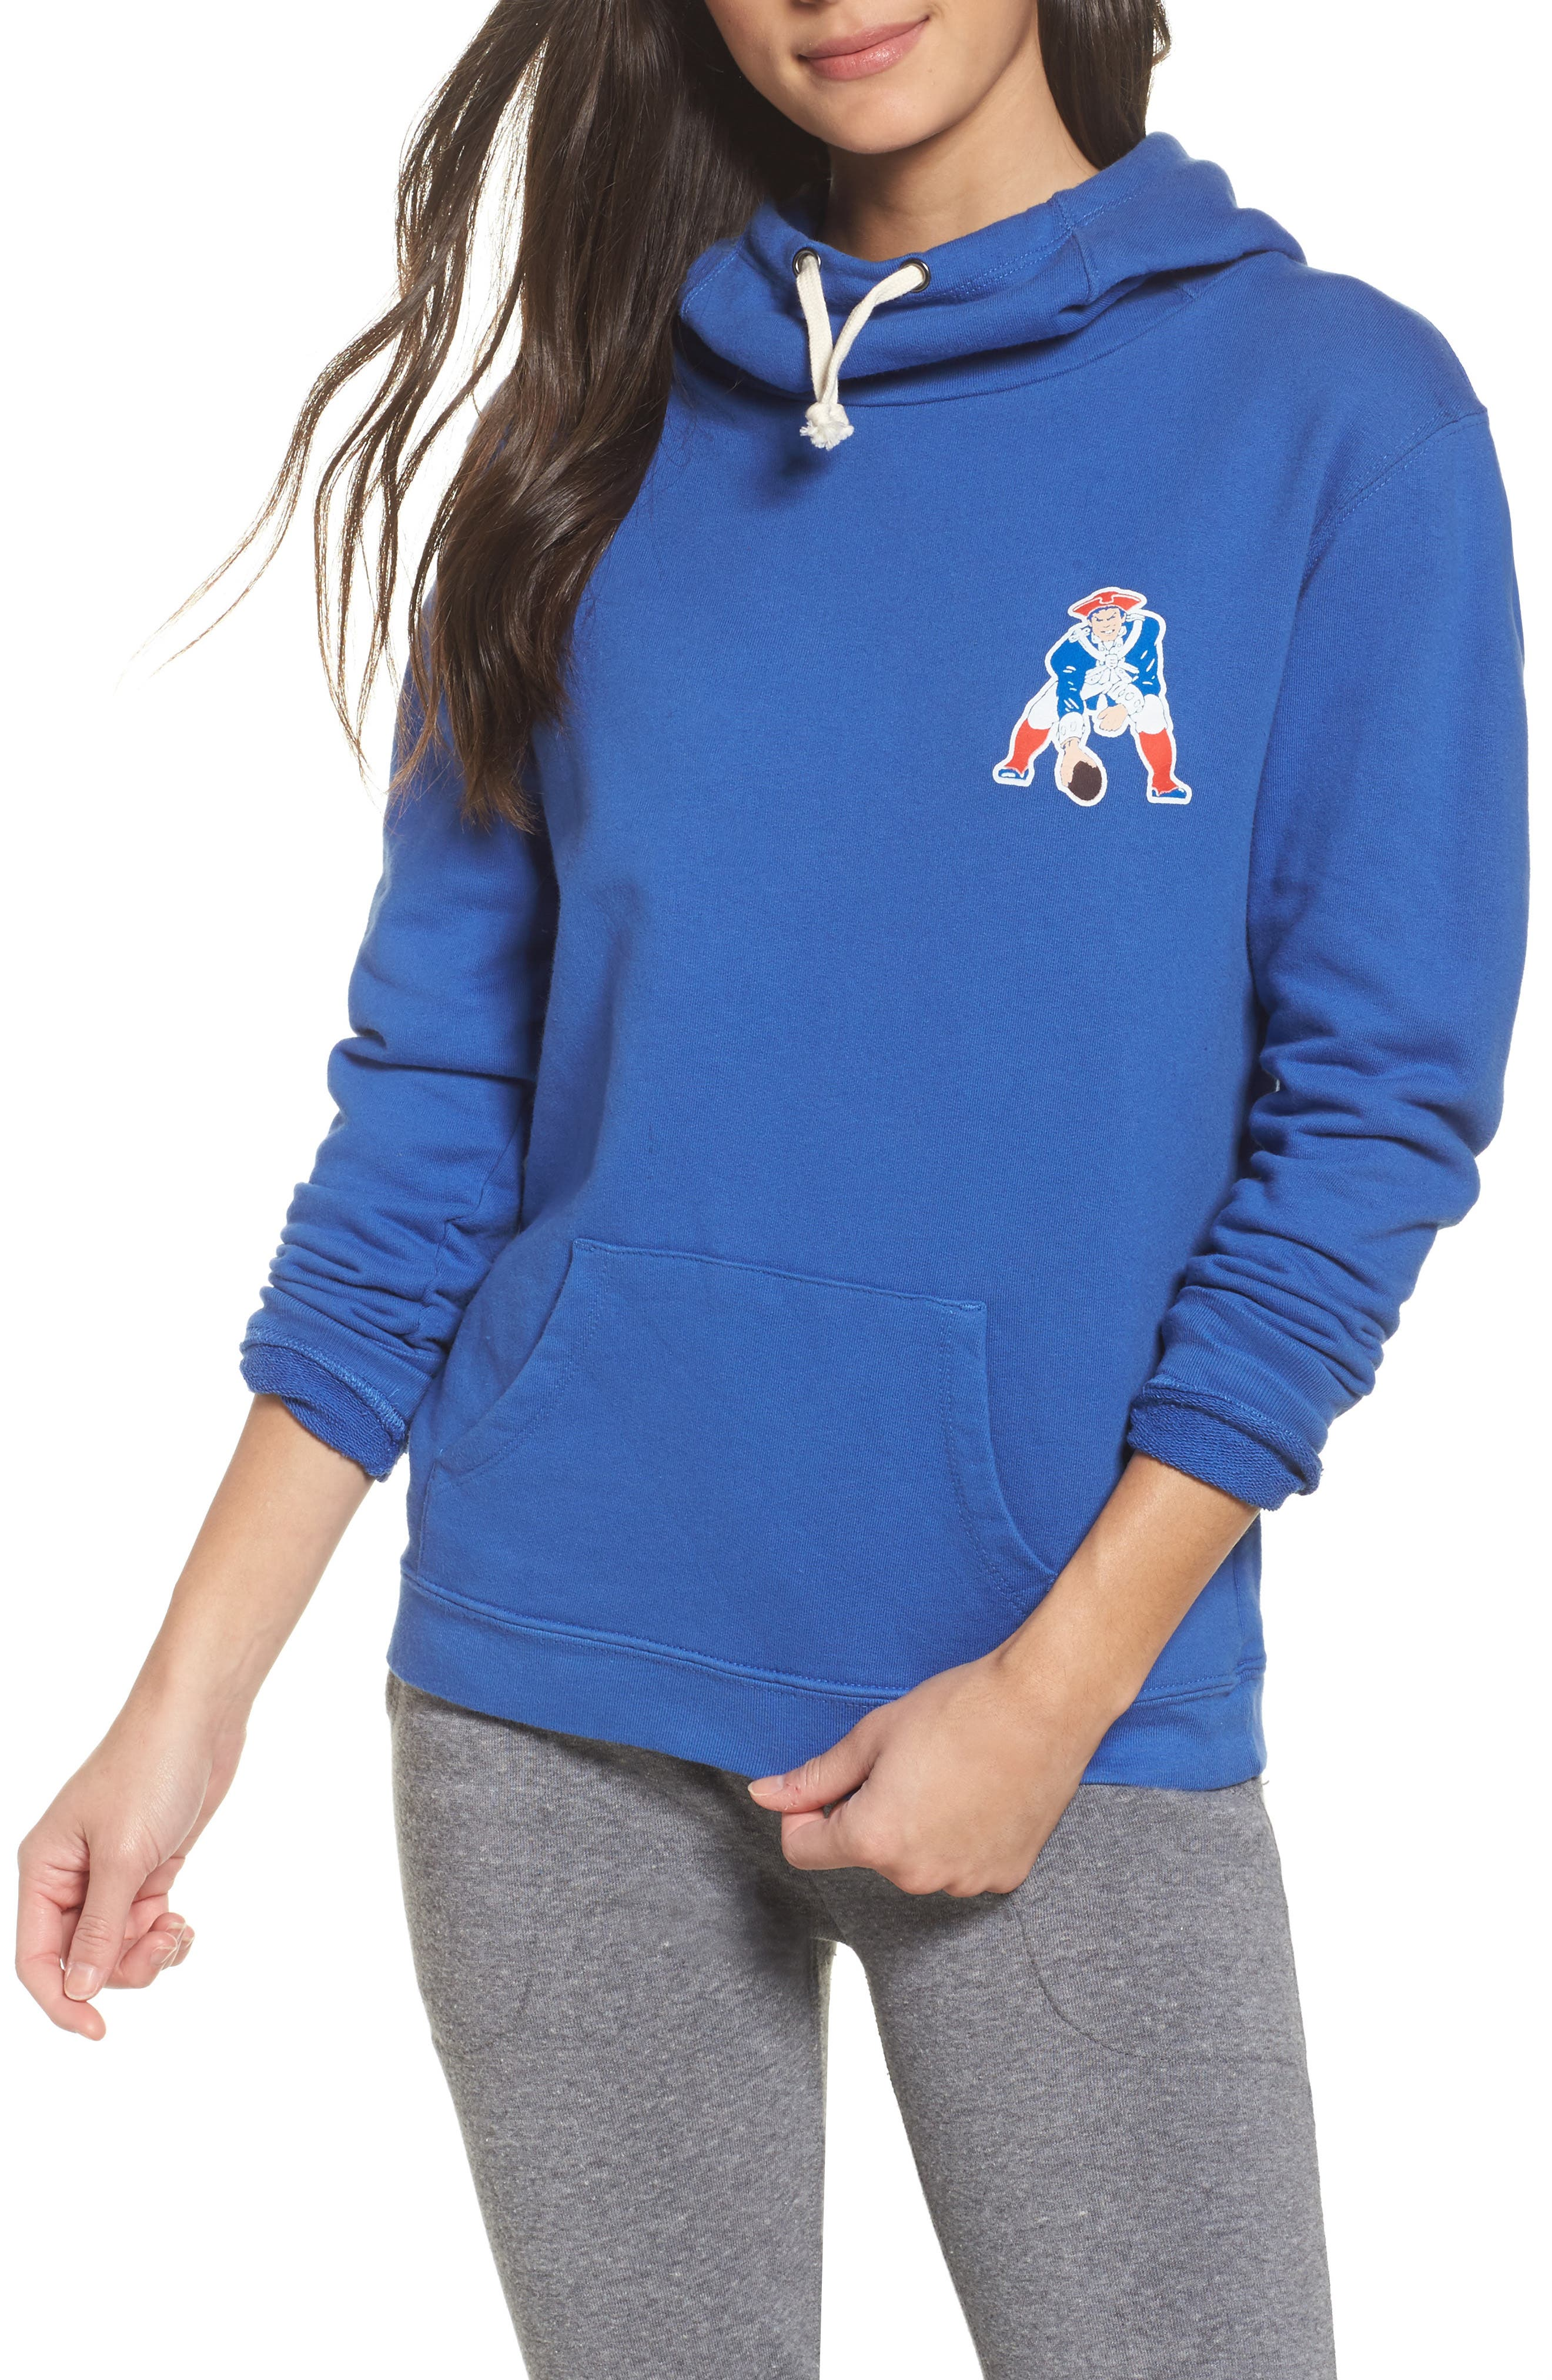 Alternate Image 1 Selected - Junk Food NFL New England Patriots Sunday Hoodie